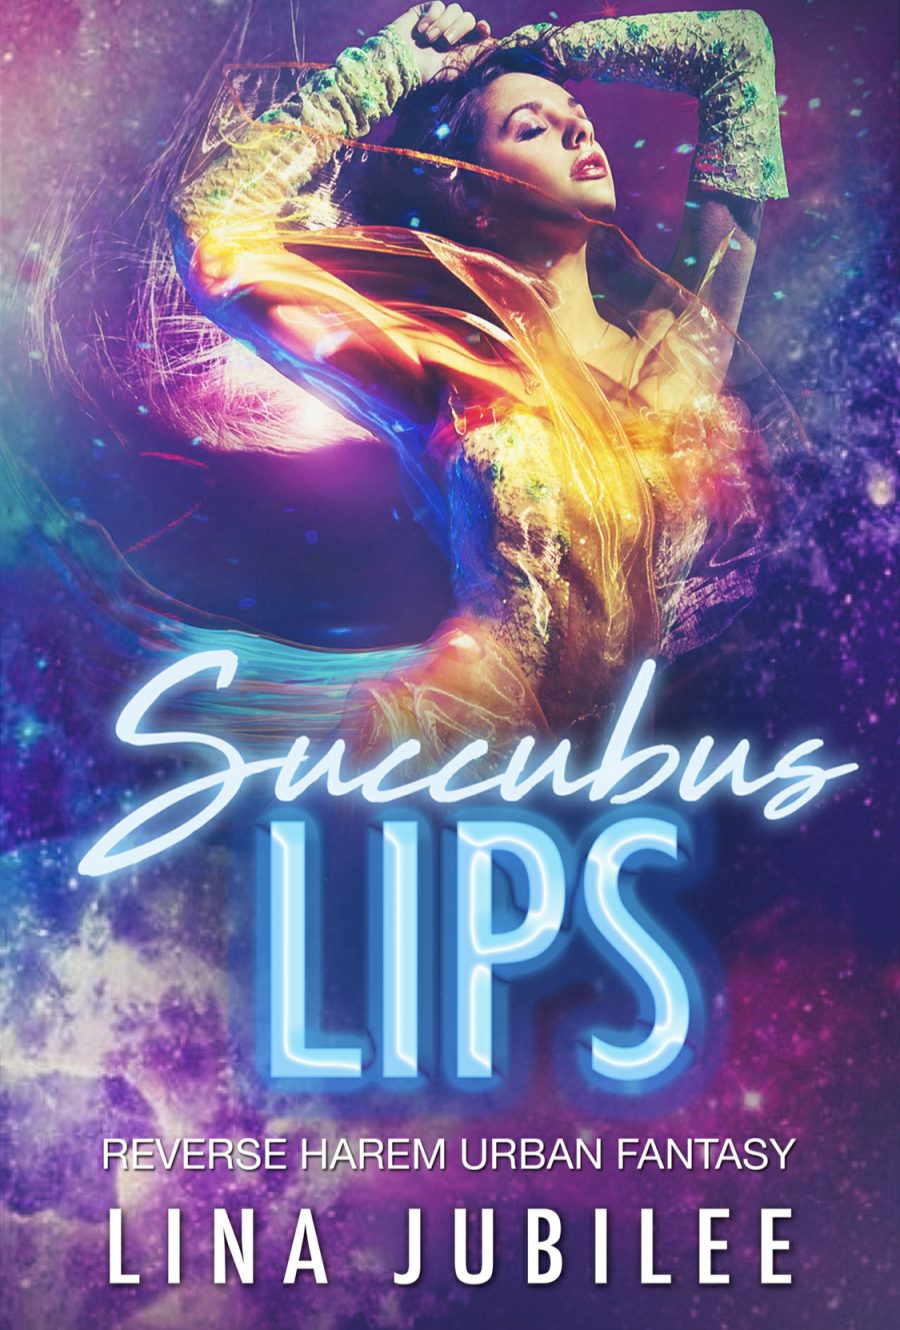 Succubus Lips (Succubus Sirens - Book 1) by Lina Jubilee - A Book Review #BookReview #UrbanFantasy #RH #FastBurn #WhyChoose #ReverseHarem #StandAlone #HEA #KindleUnlimited